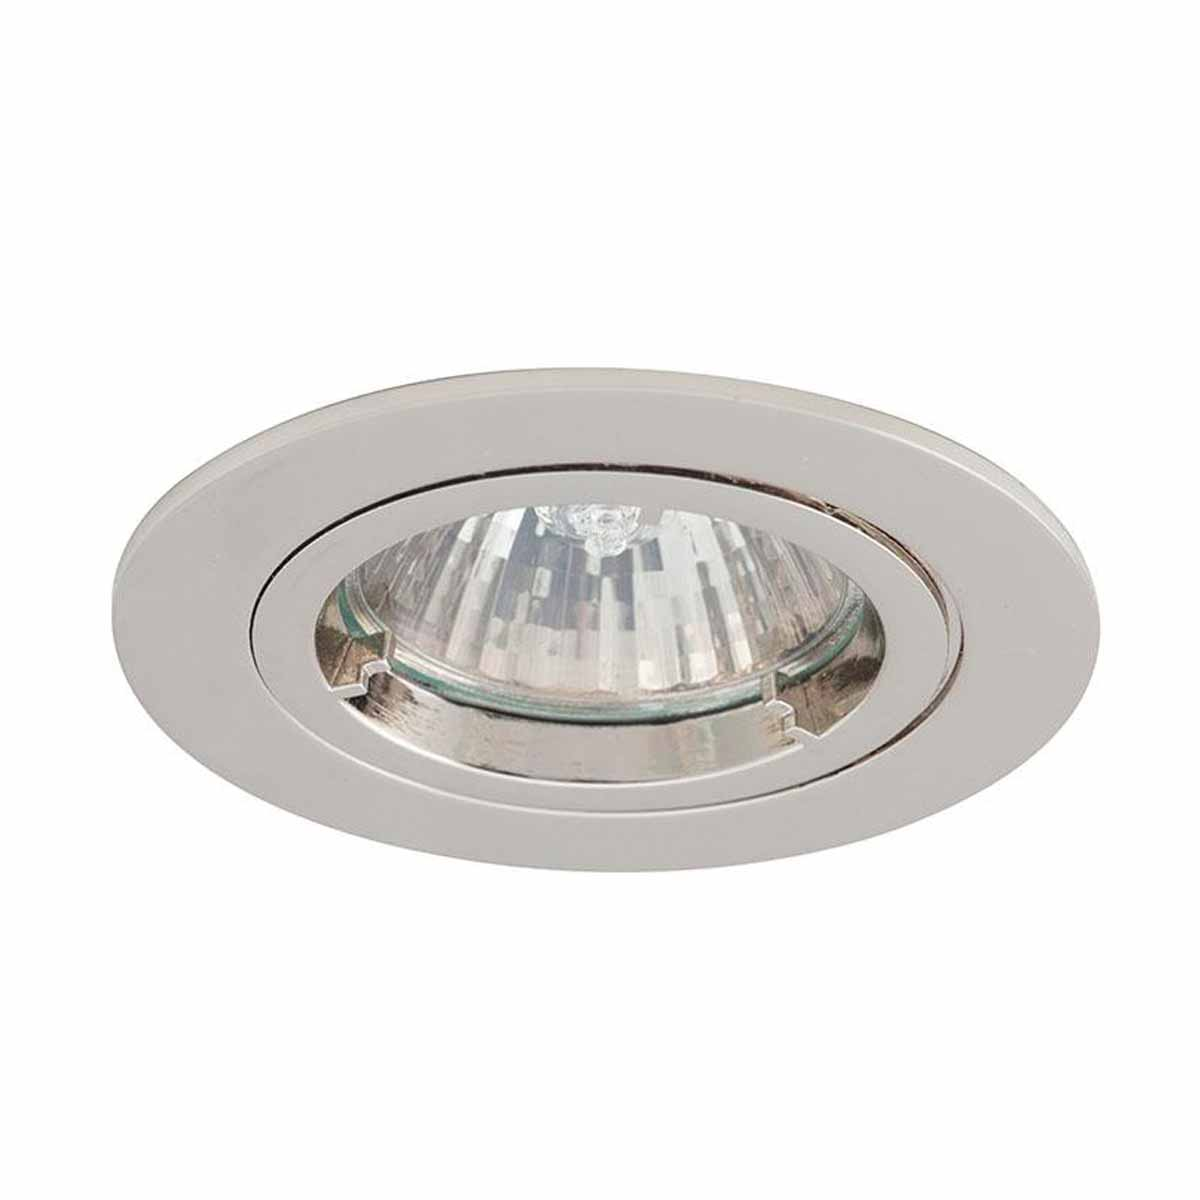 Ansell Twistlock 50W Chrome Downlight